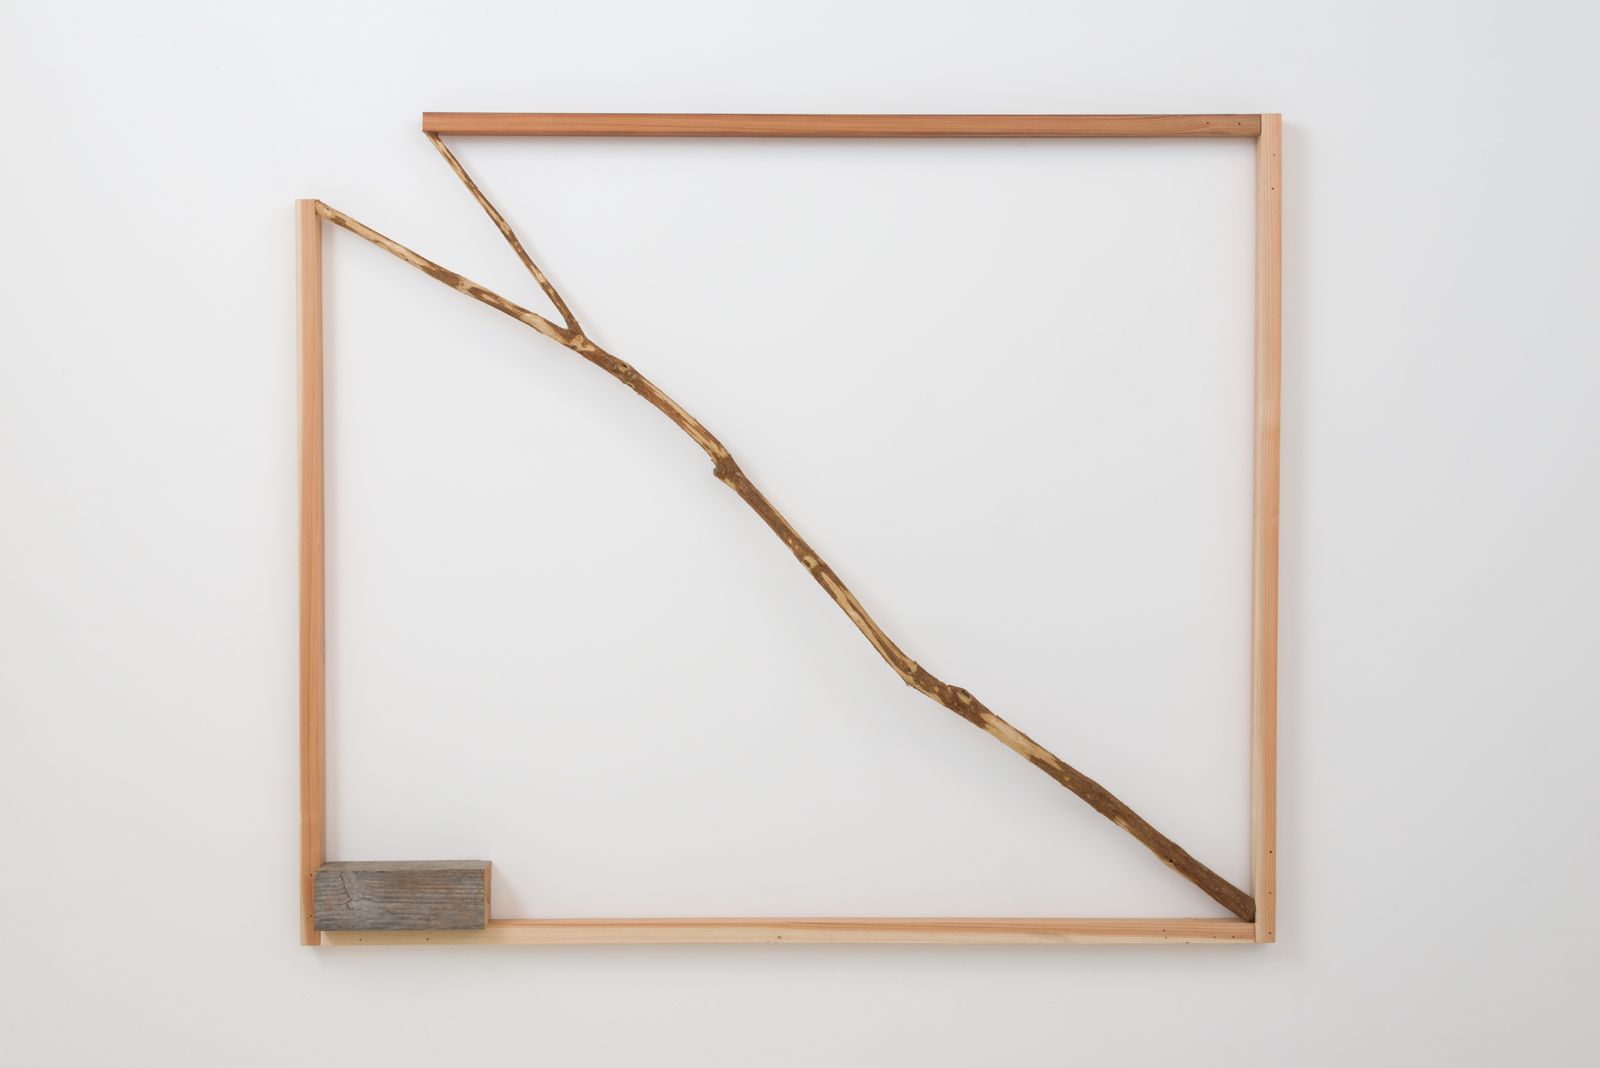 Kishio Suga  Opening Situation , 1990-2016 wood, branch 48 x 57 x 4 ½ in. Courtesy of Blum and Poe